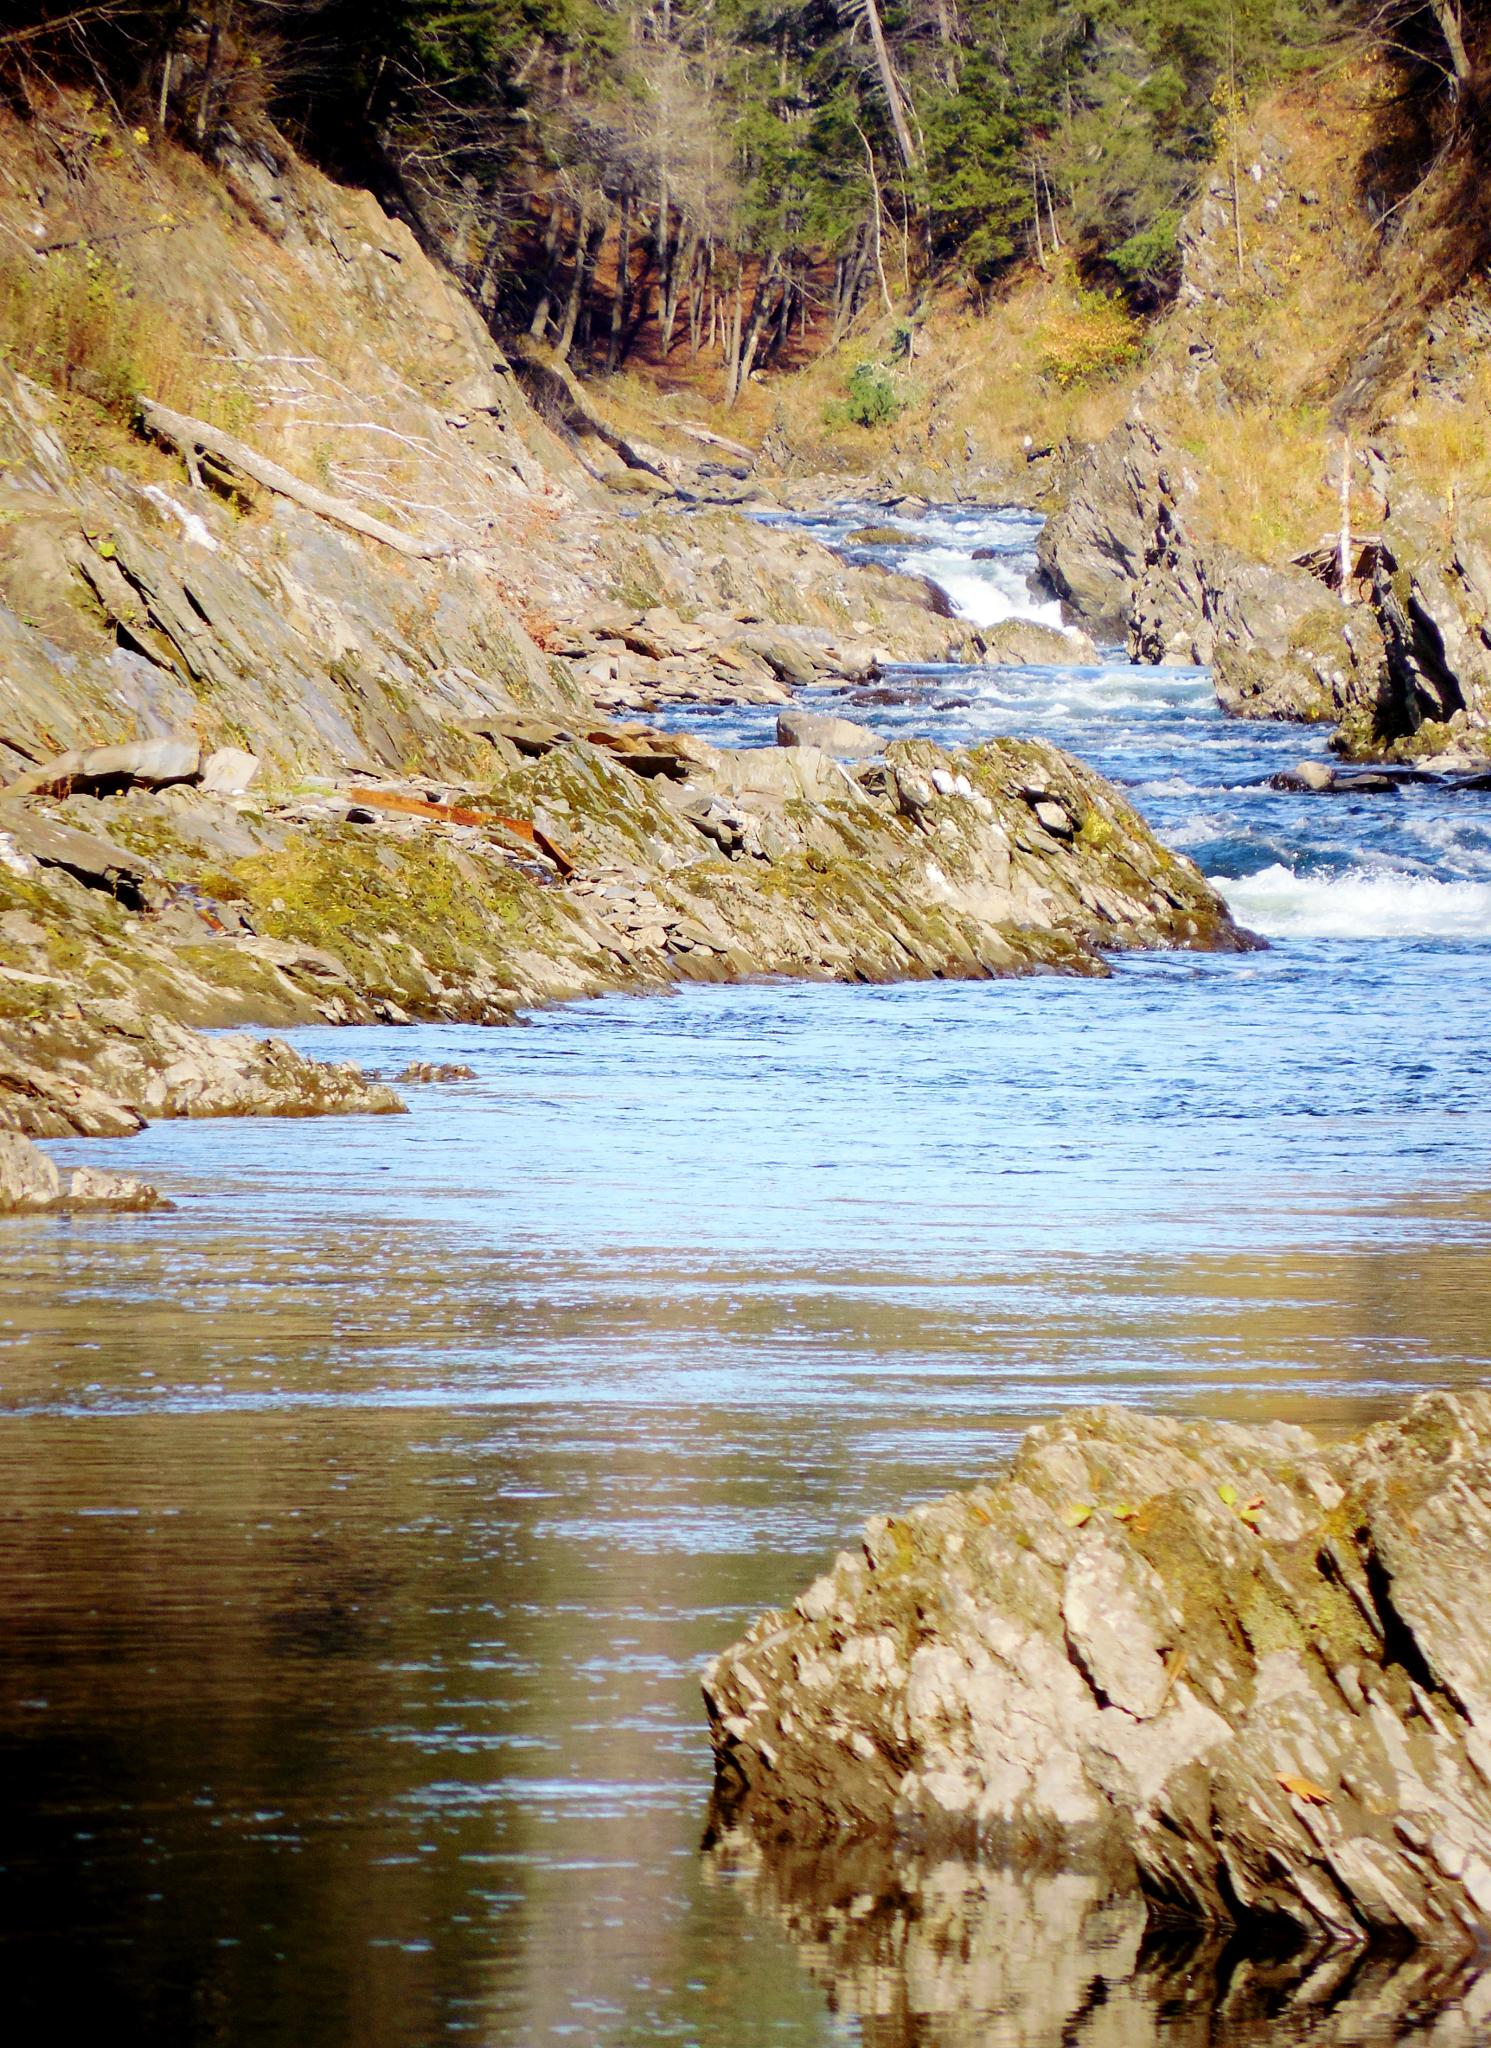 River in the Gorge by MarcianGraffix